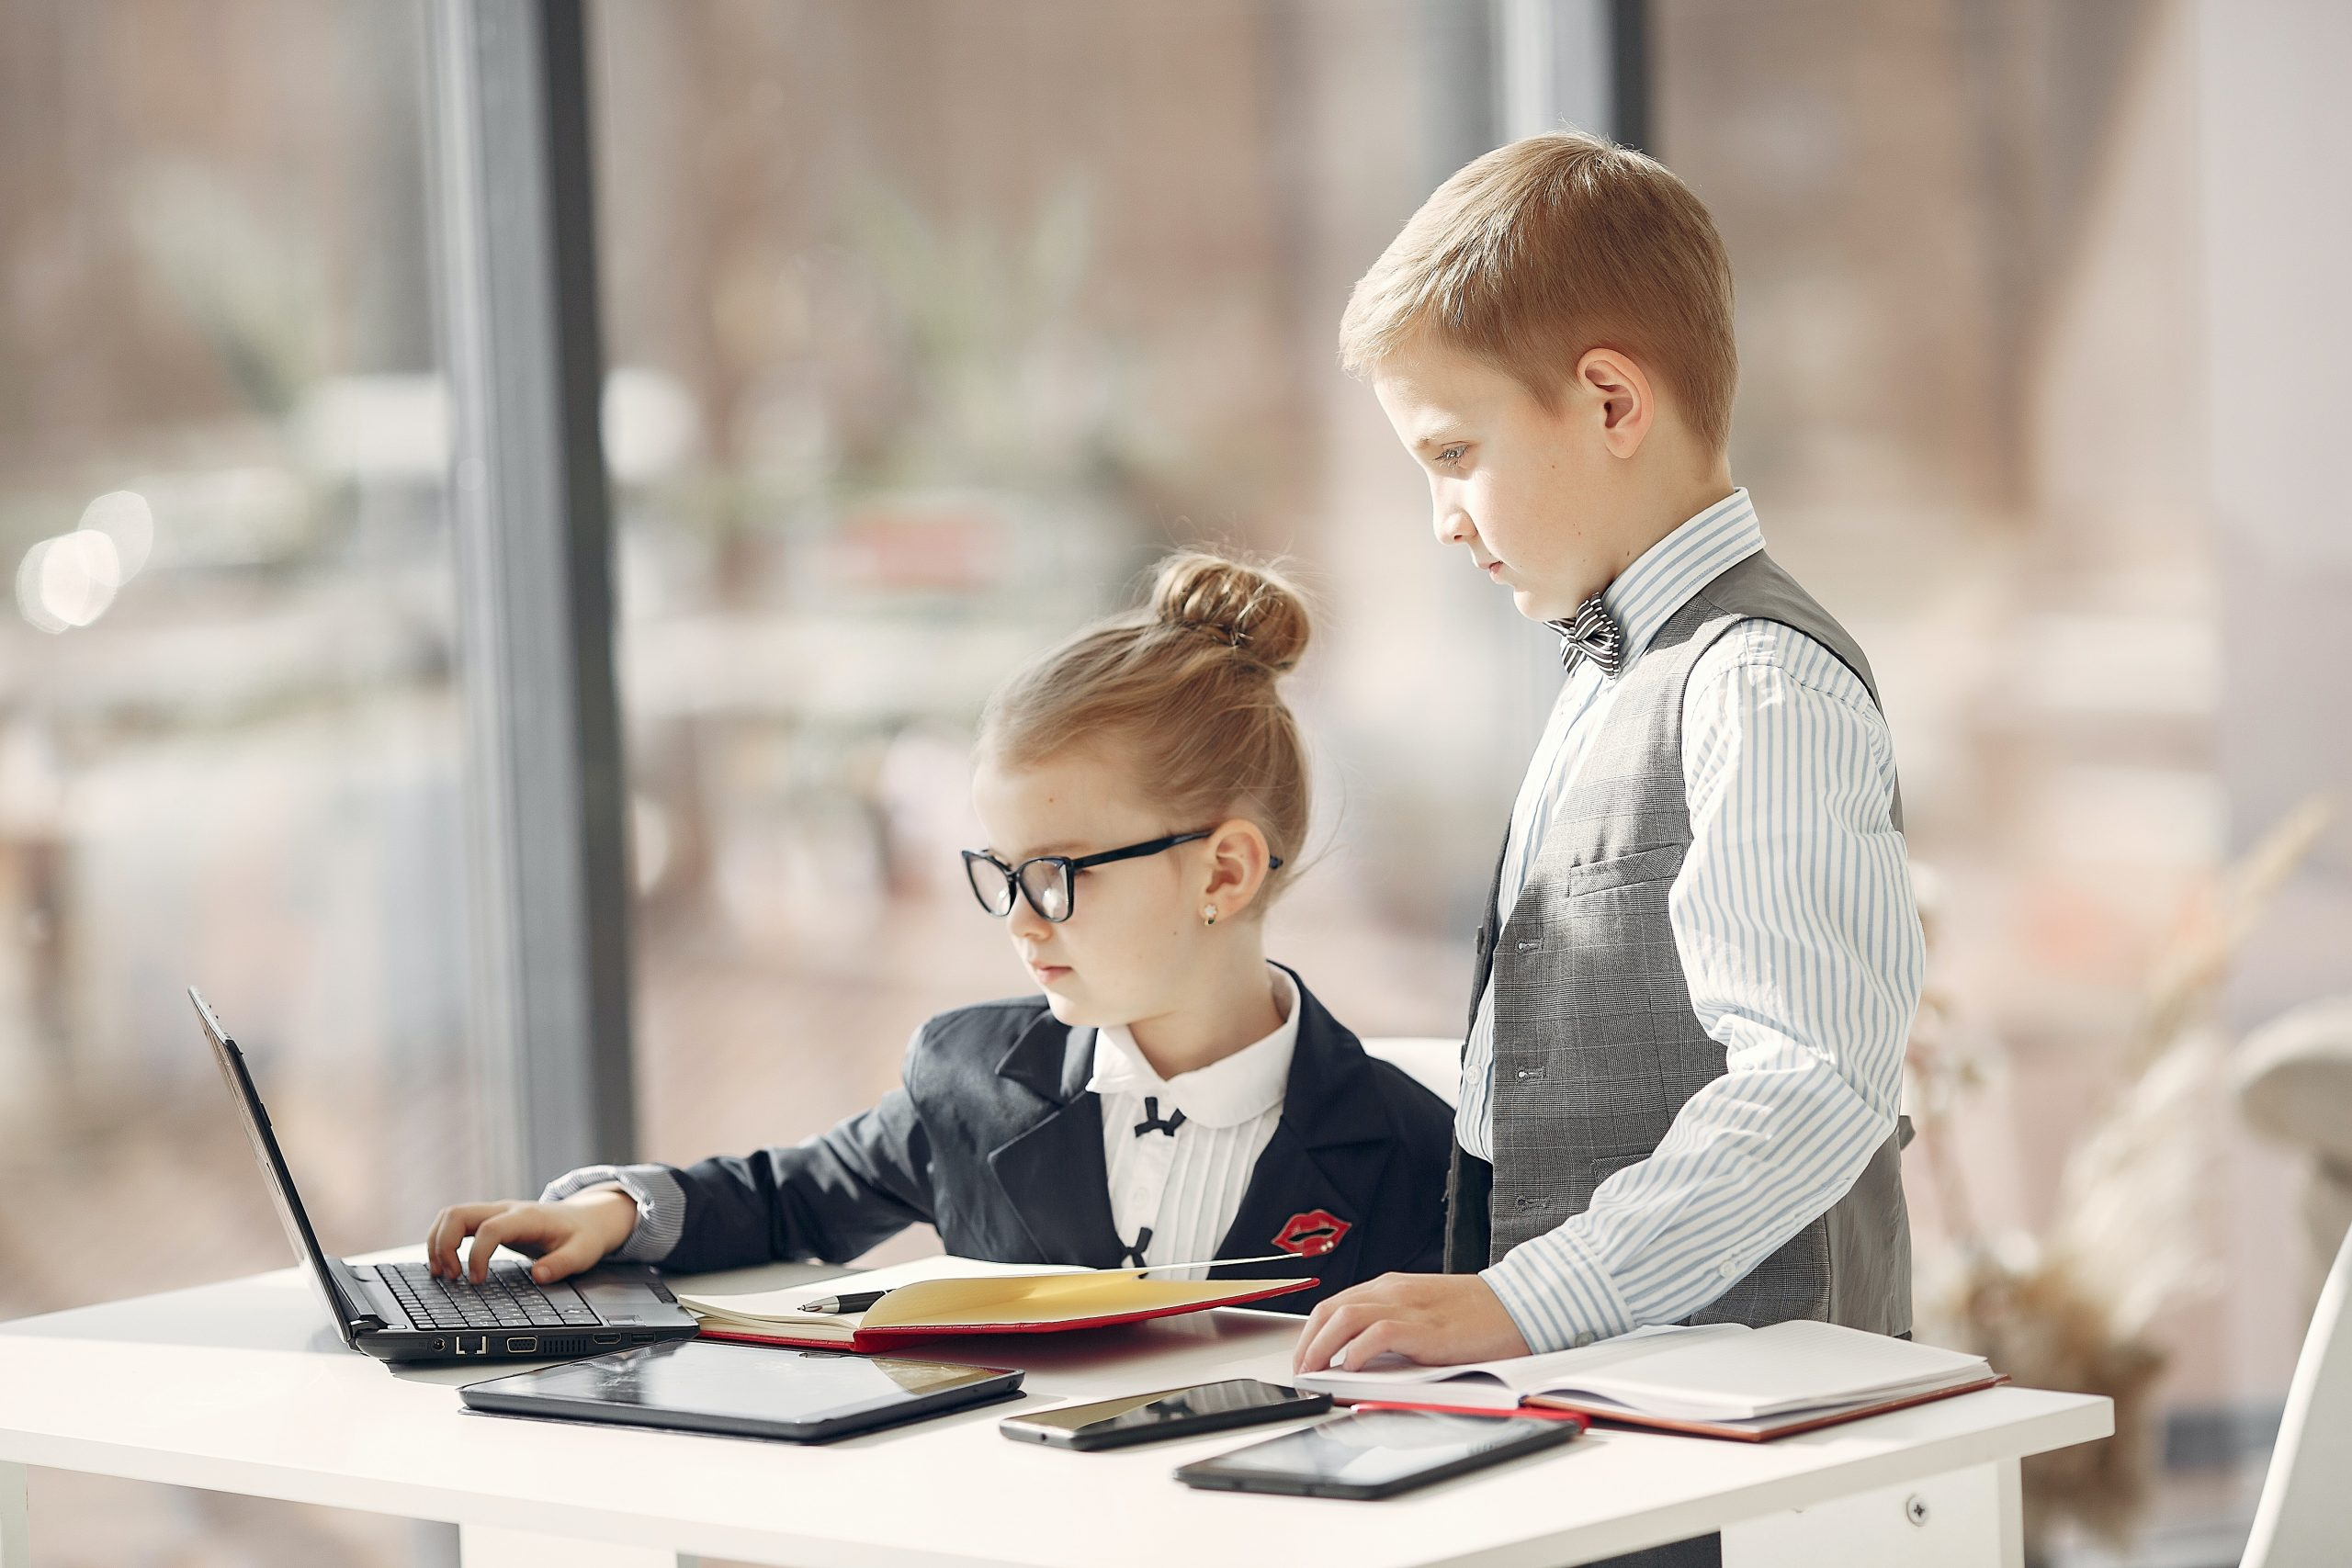 https://www.pexels.com/photo/cute-business-kids-working-on-project-together-surfing-laptop-in-light-workplace-3874121/